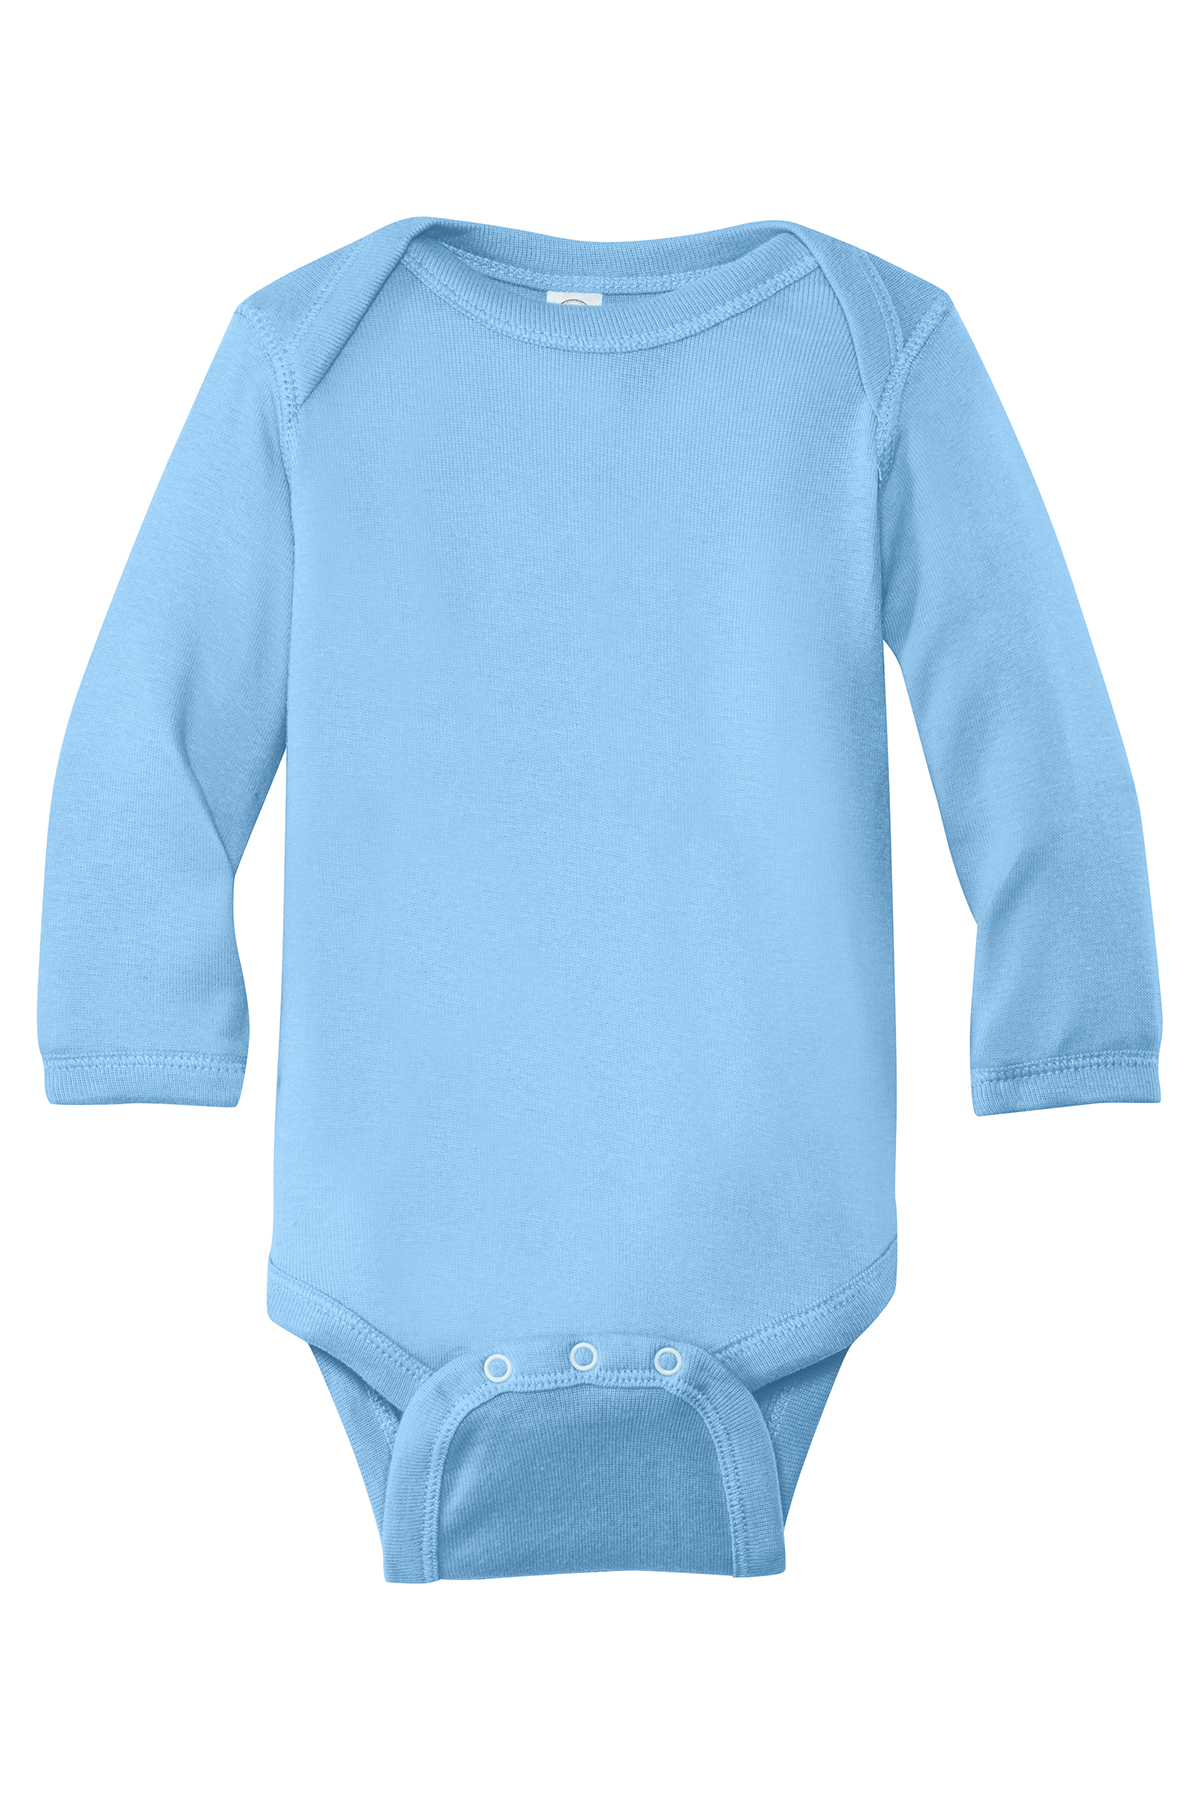 Rabbit Skins™ Infant Long Sleeve Baby Rib Bodysuit.